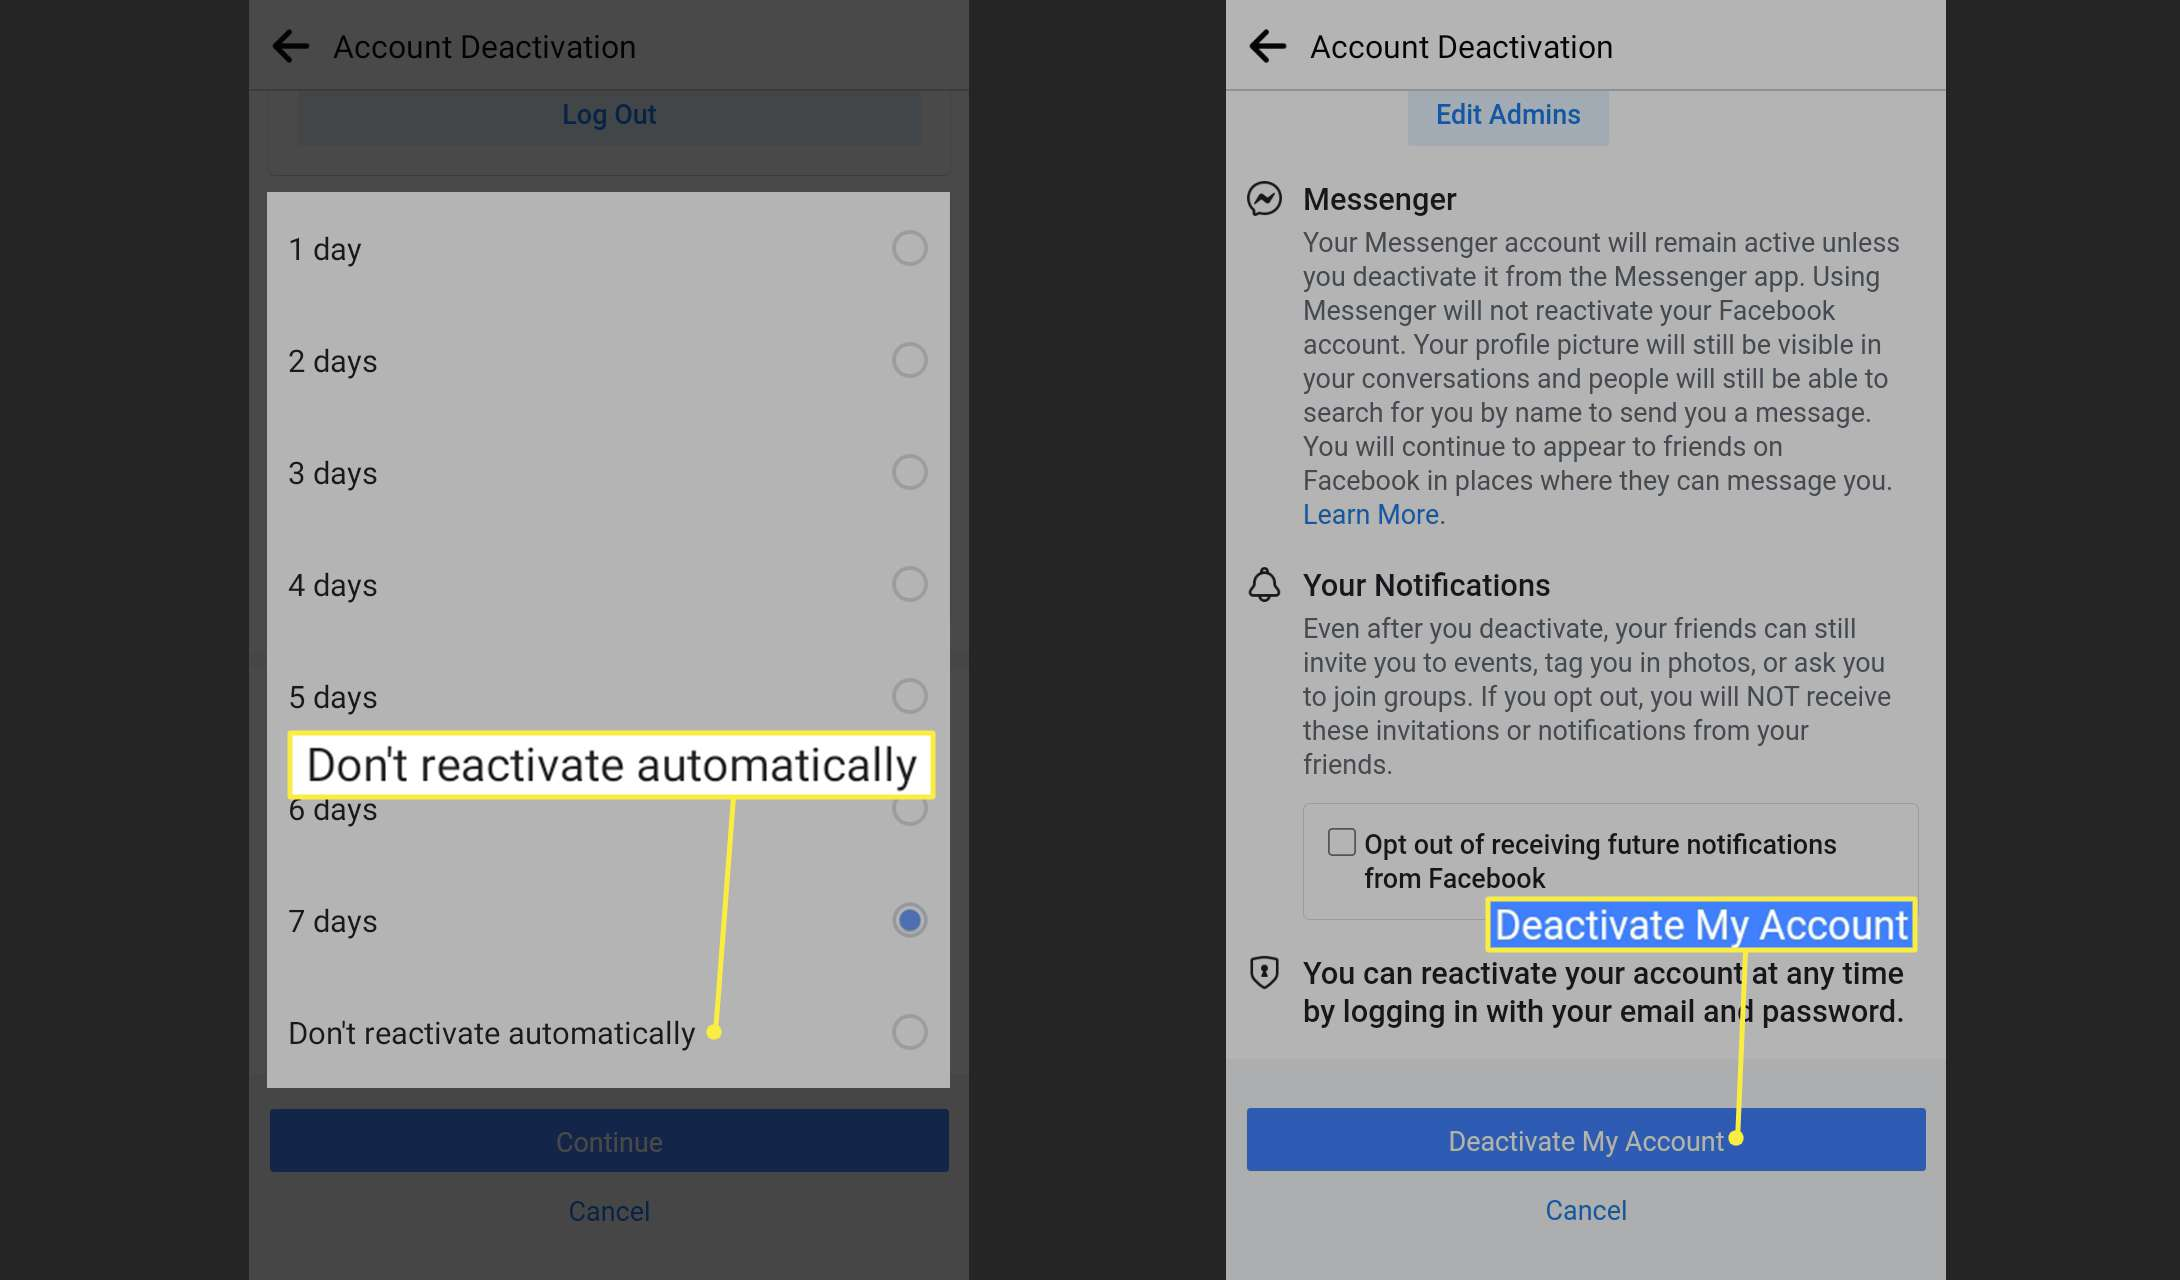 Don't reactivate automatically and Deactivate my account on the Facebook app